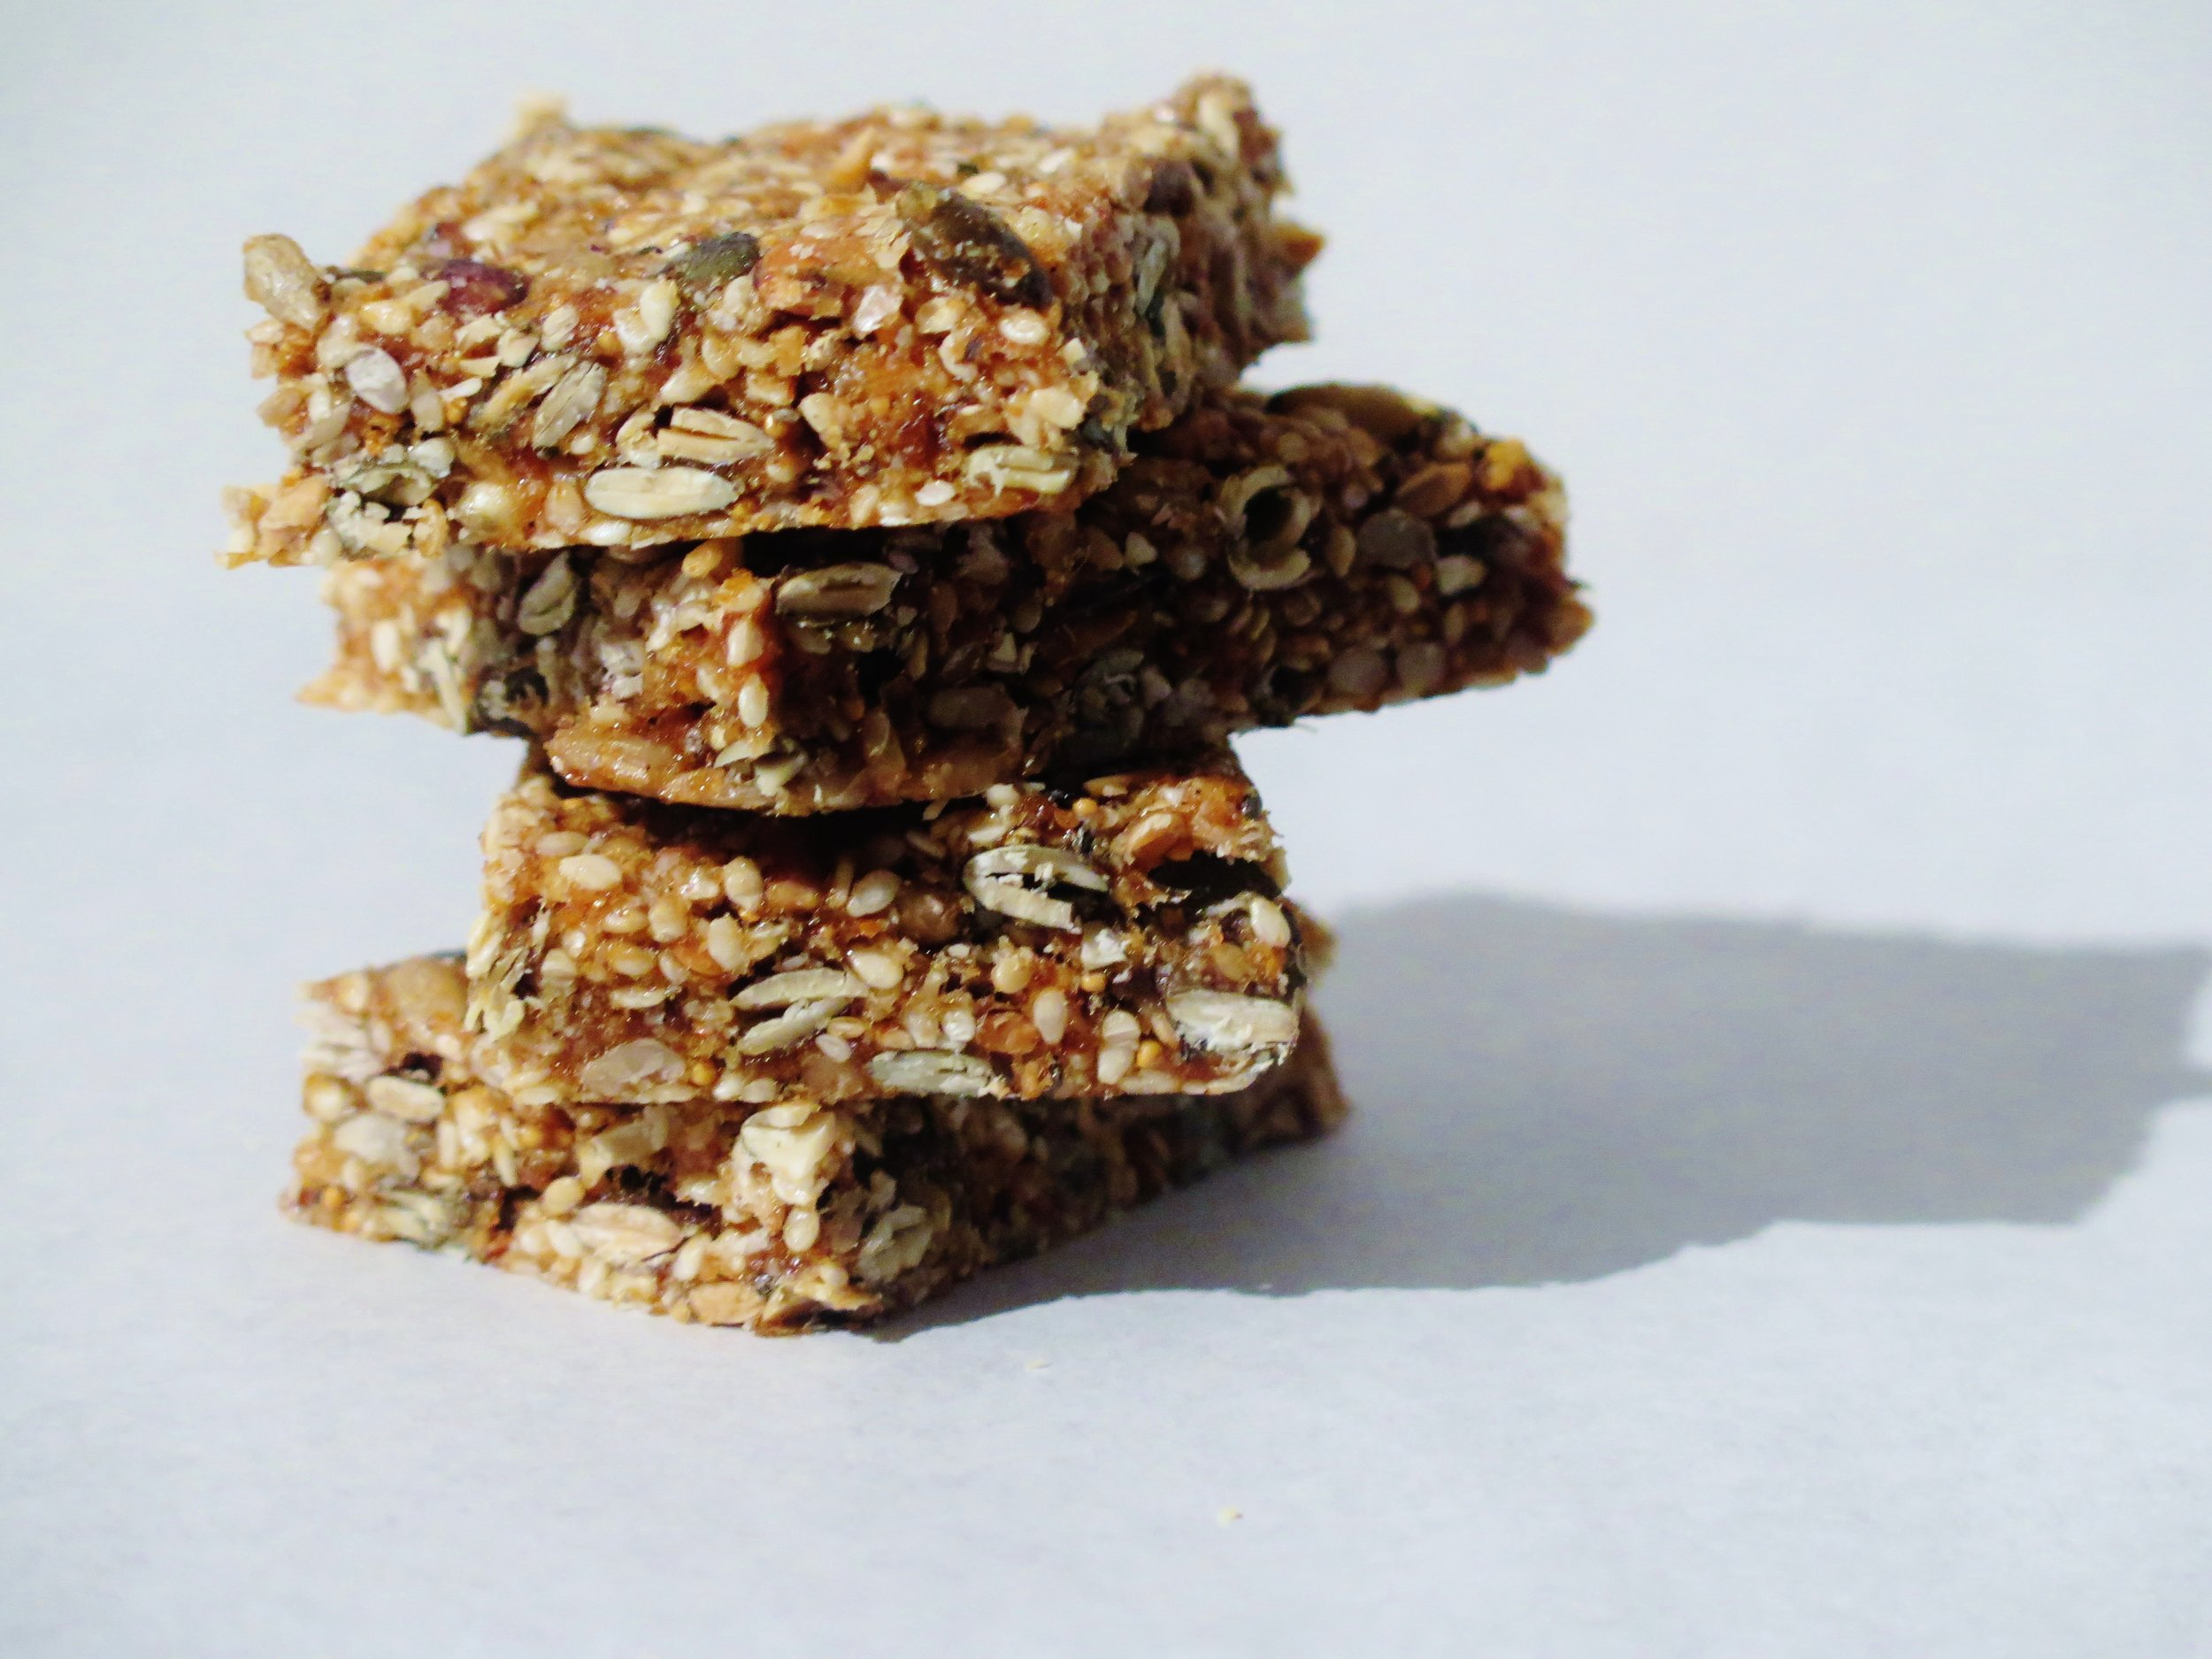 Carb-free, Sugar-free, Gluten-free  Fruit & Seed Bars